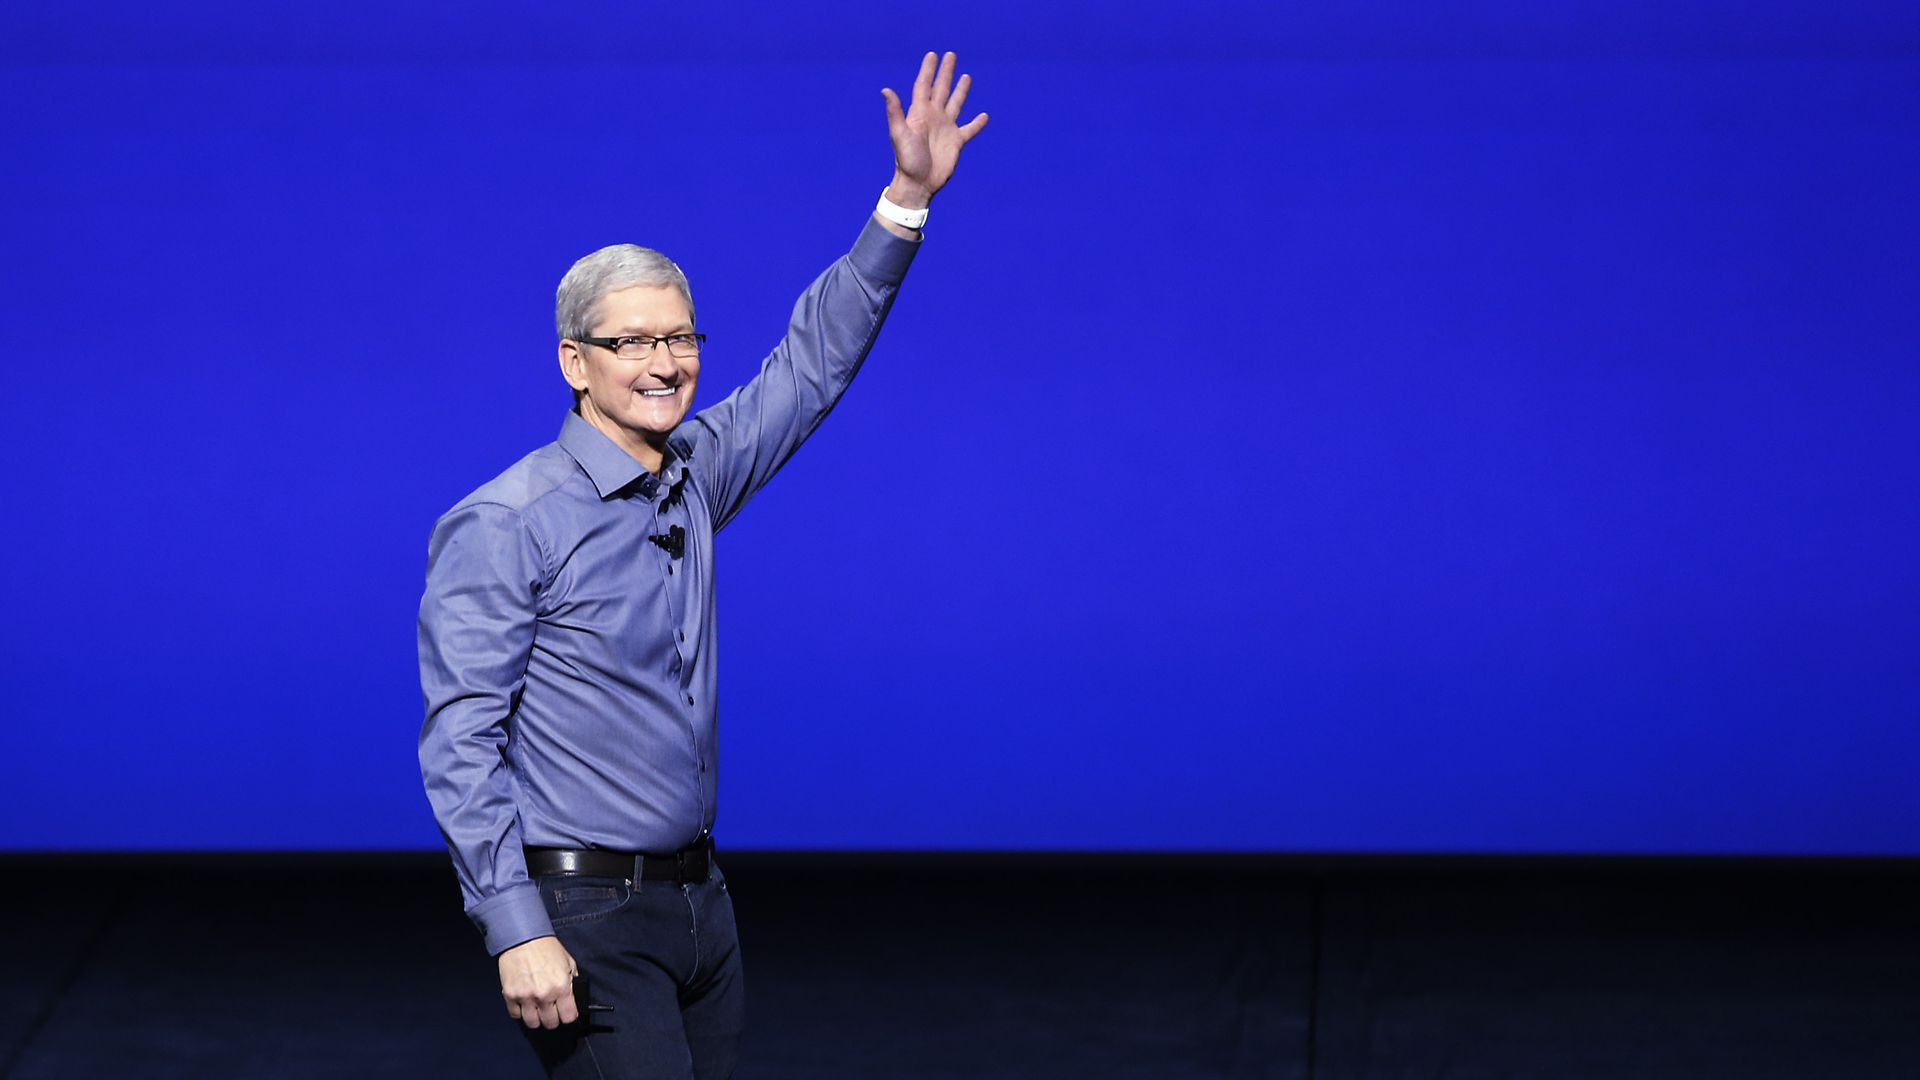 Tim Cook in front of a blue backdrop